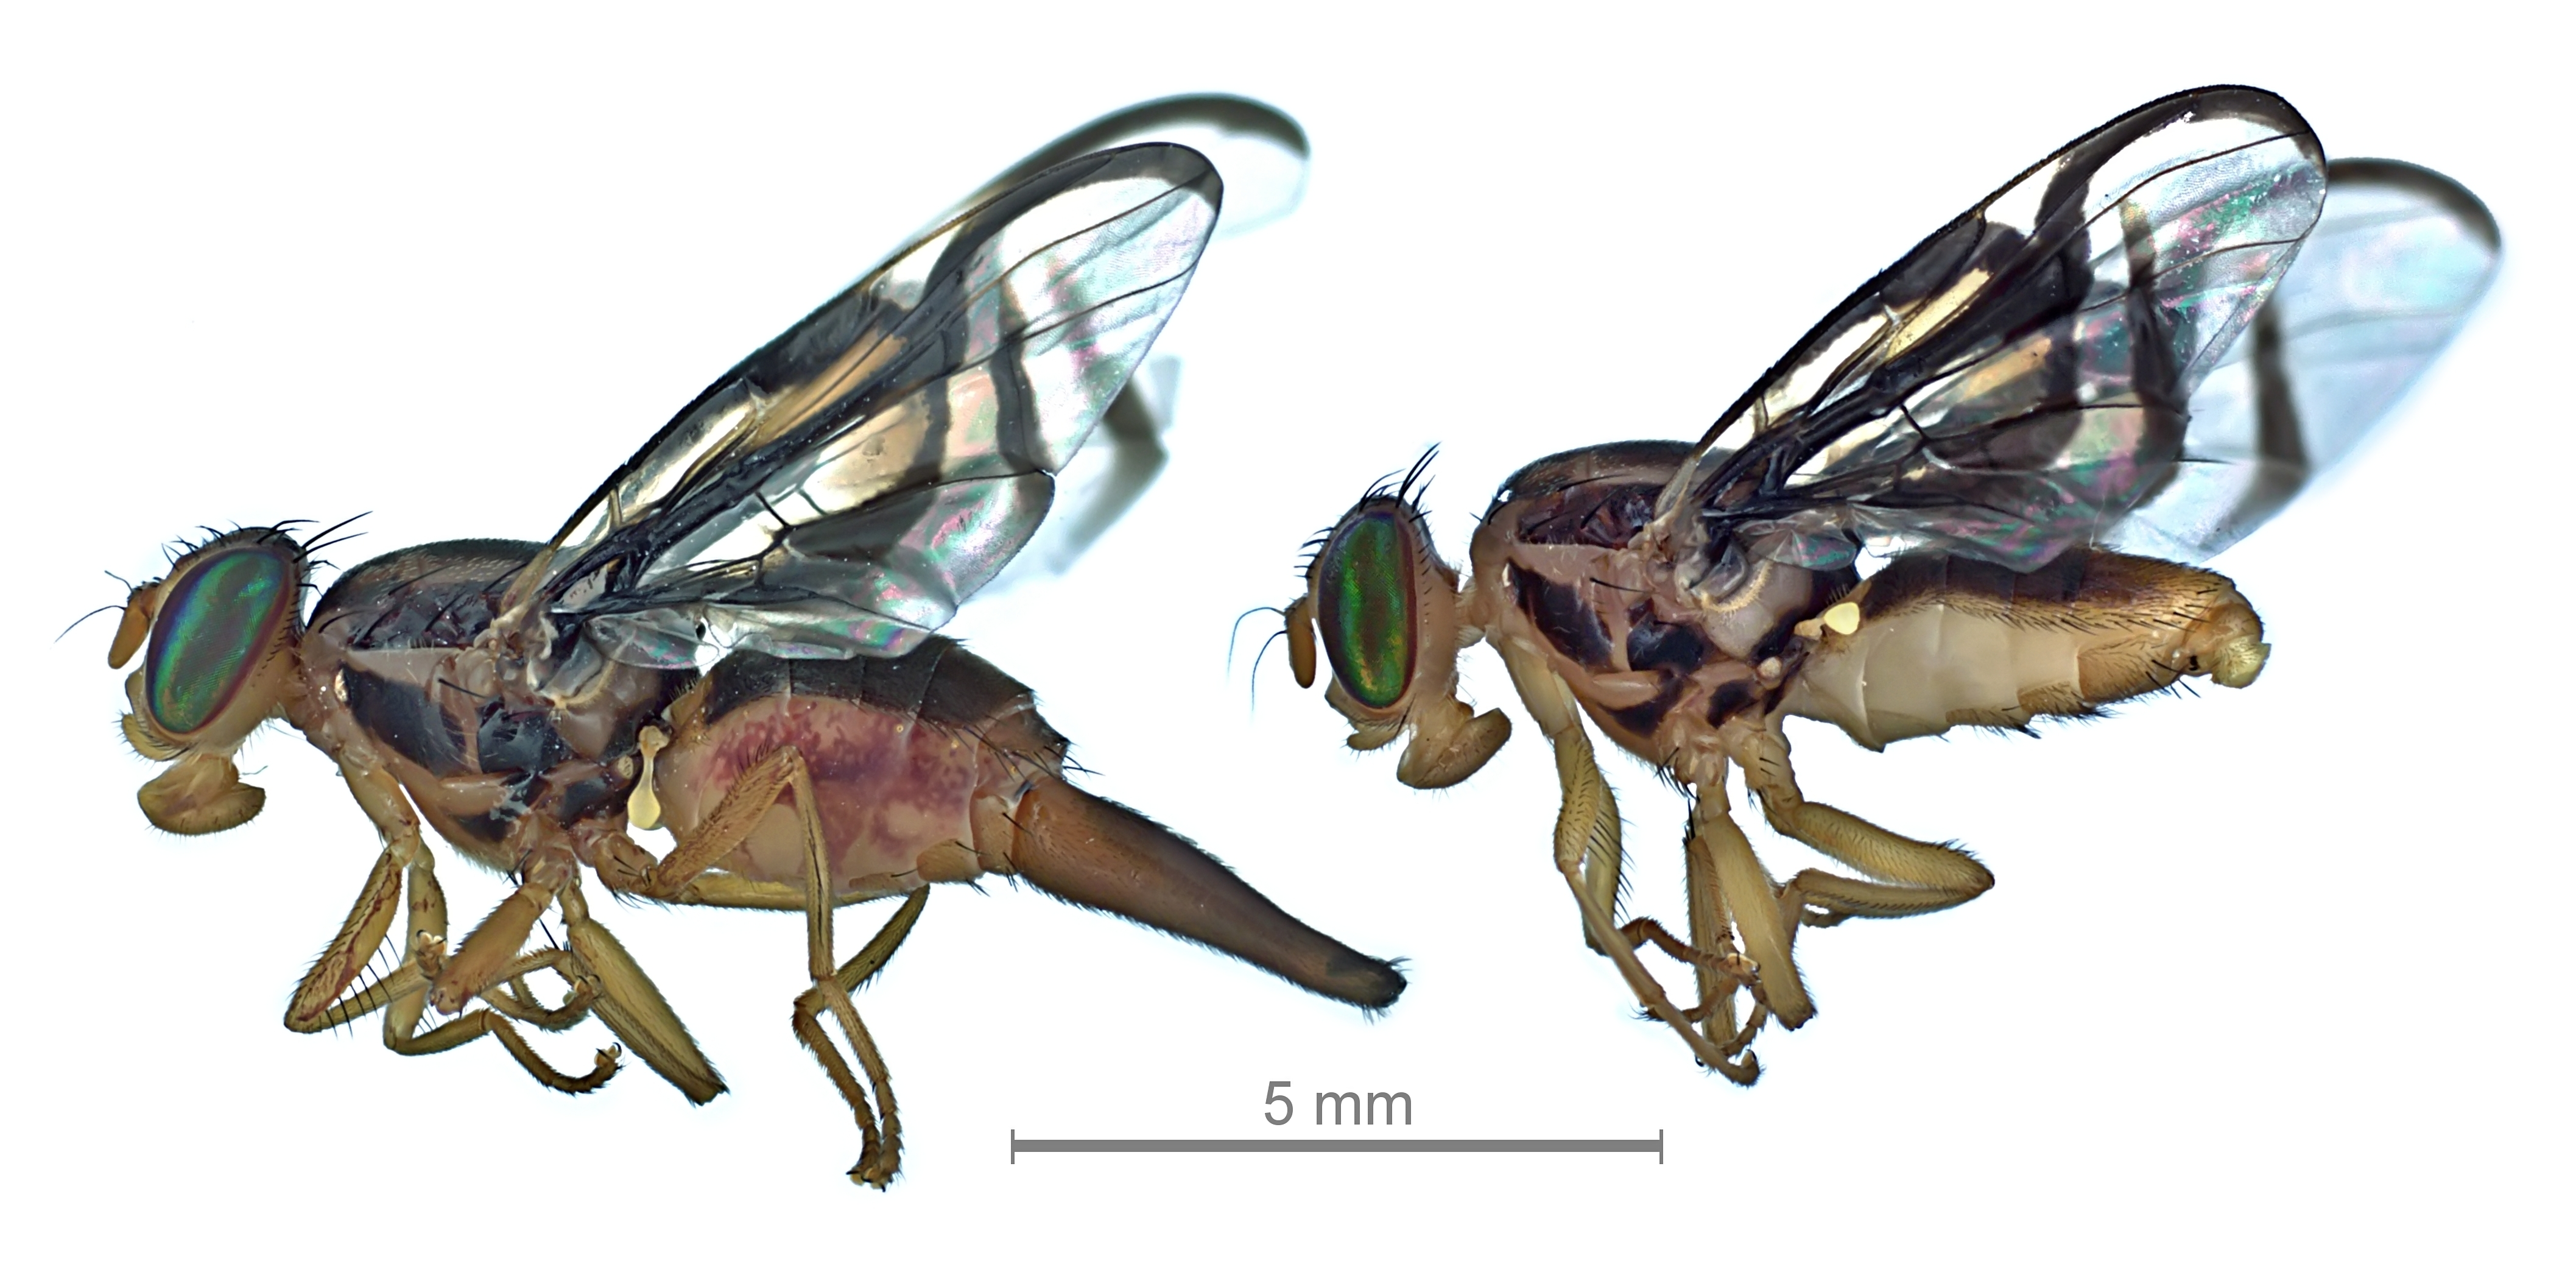 Sapote fruit fly, Anastrepha serpentina